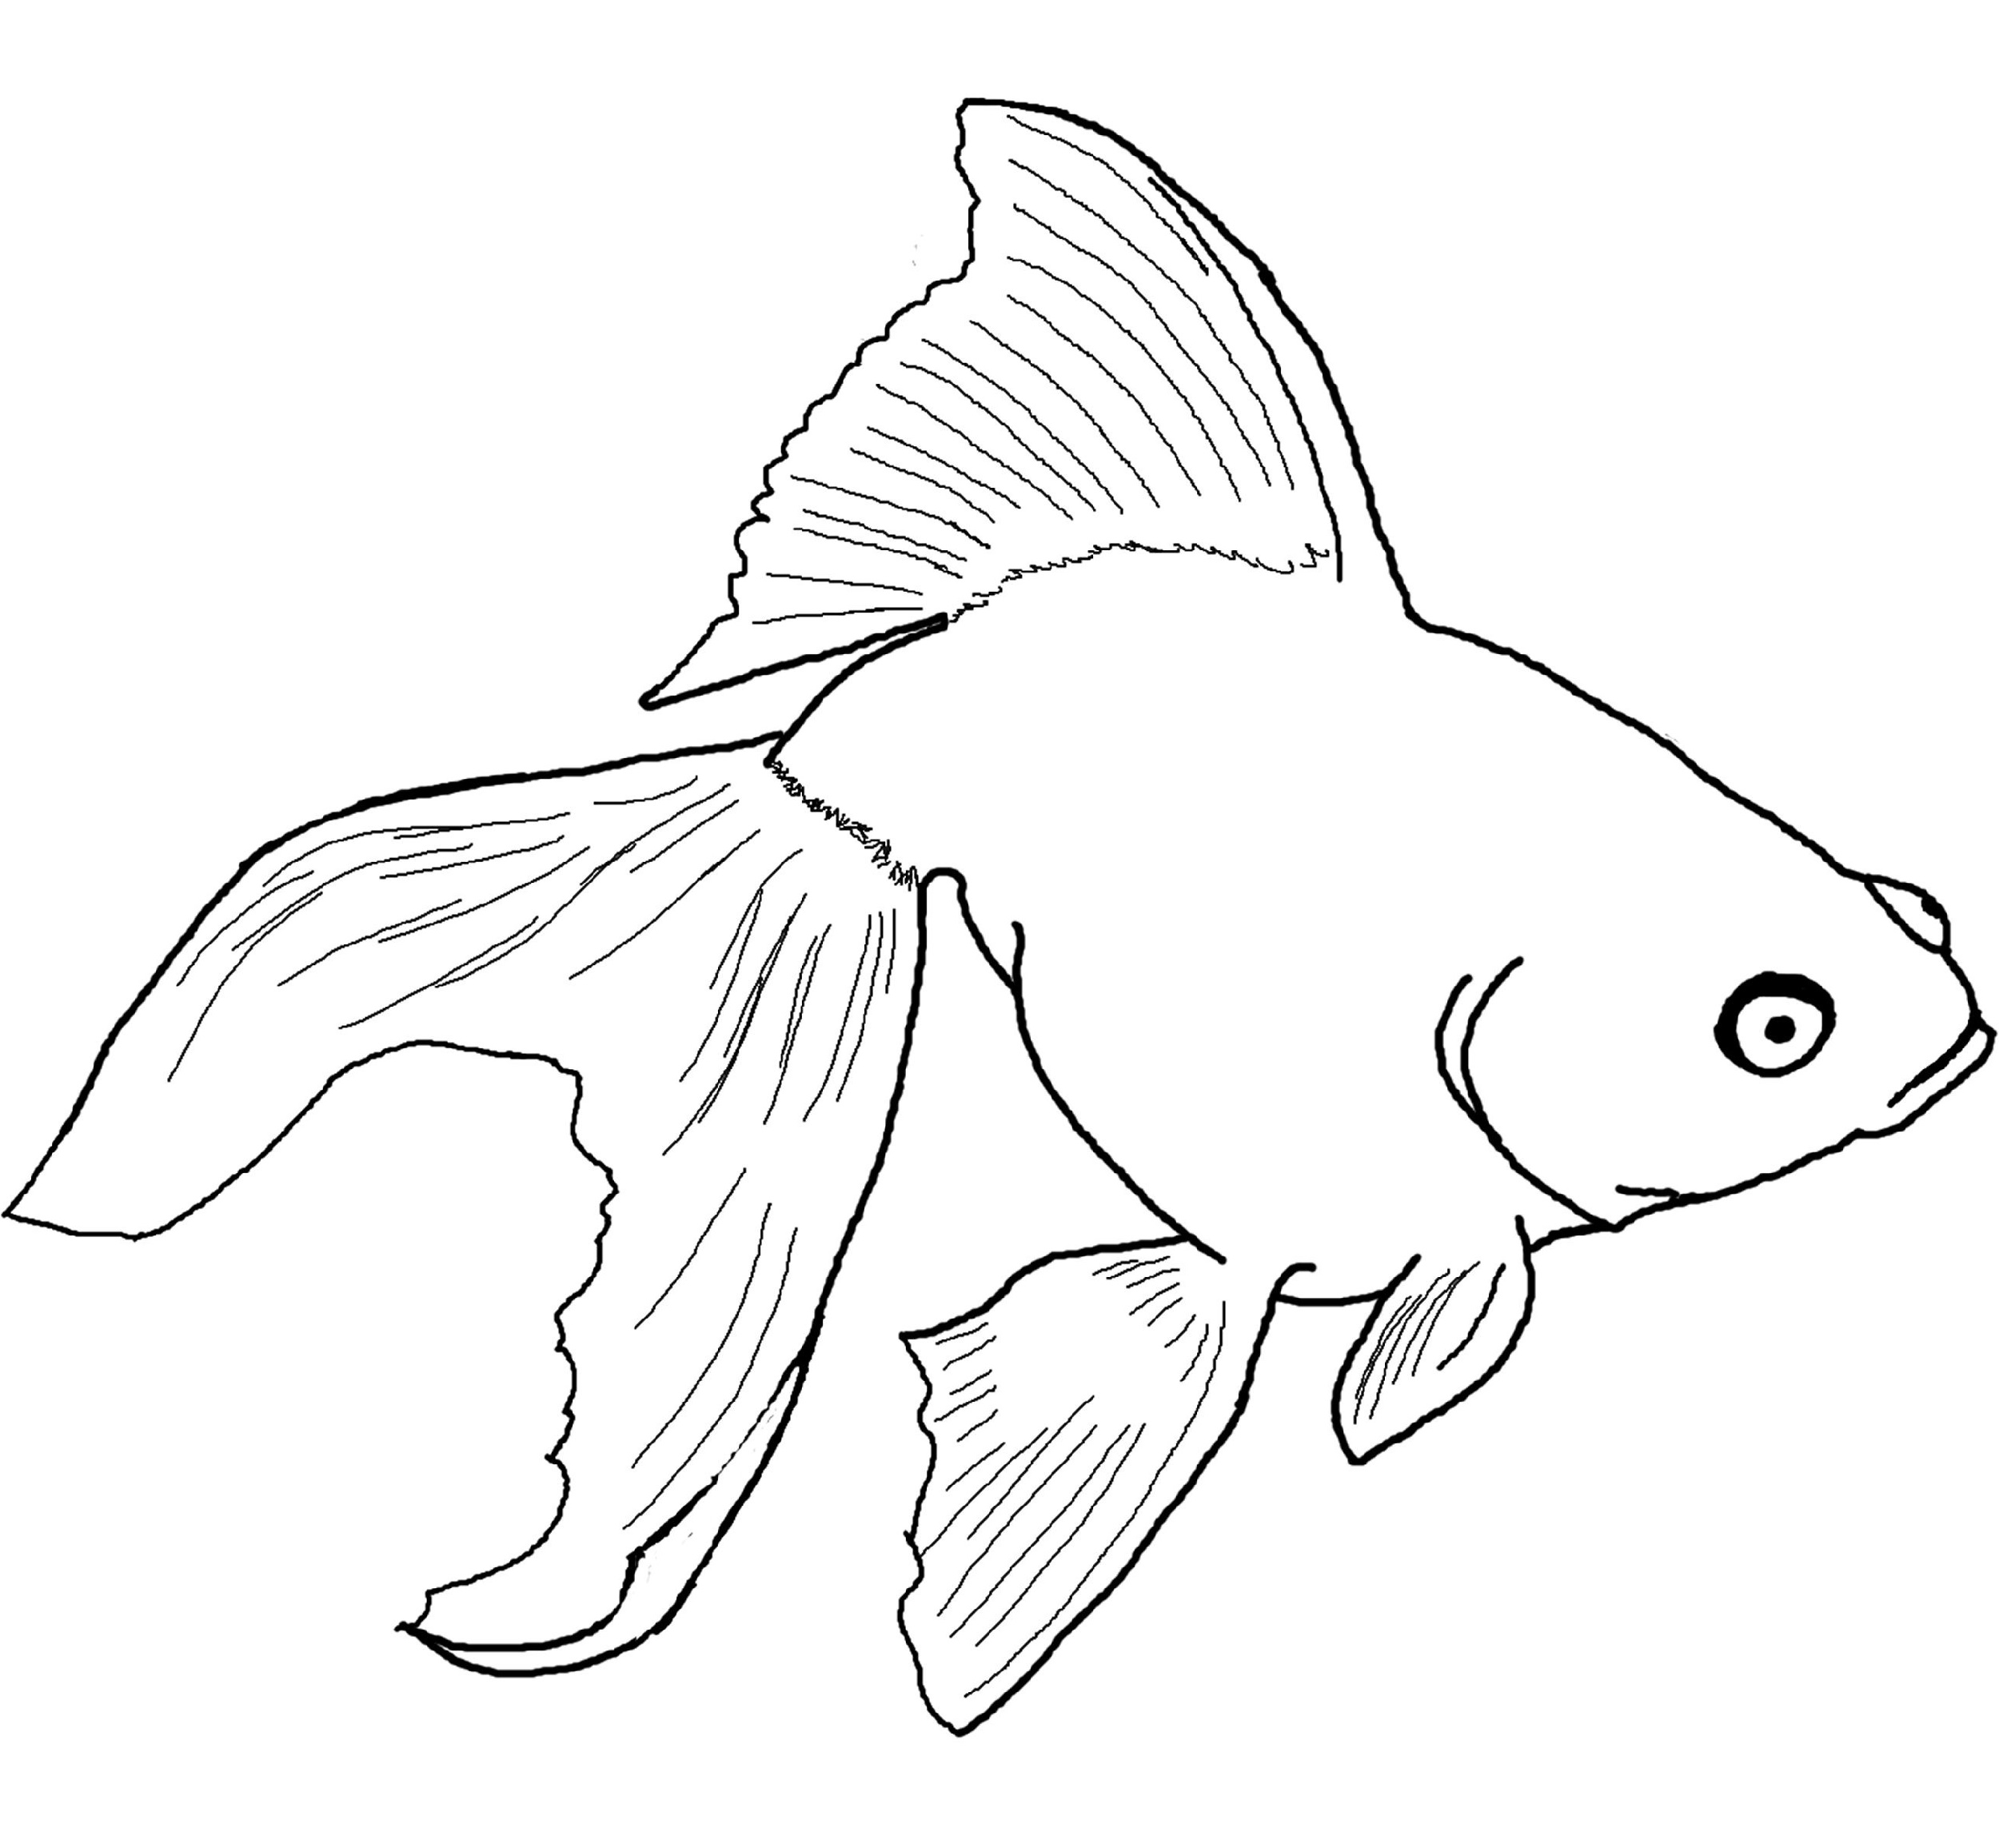 Drawing Sheets for Kids Fish